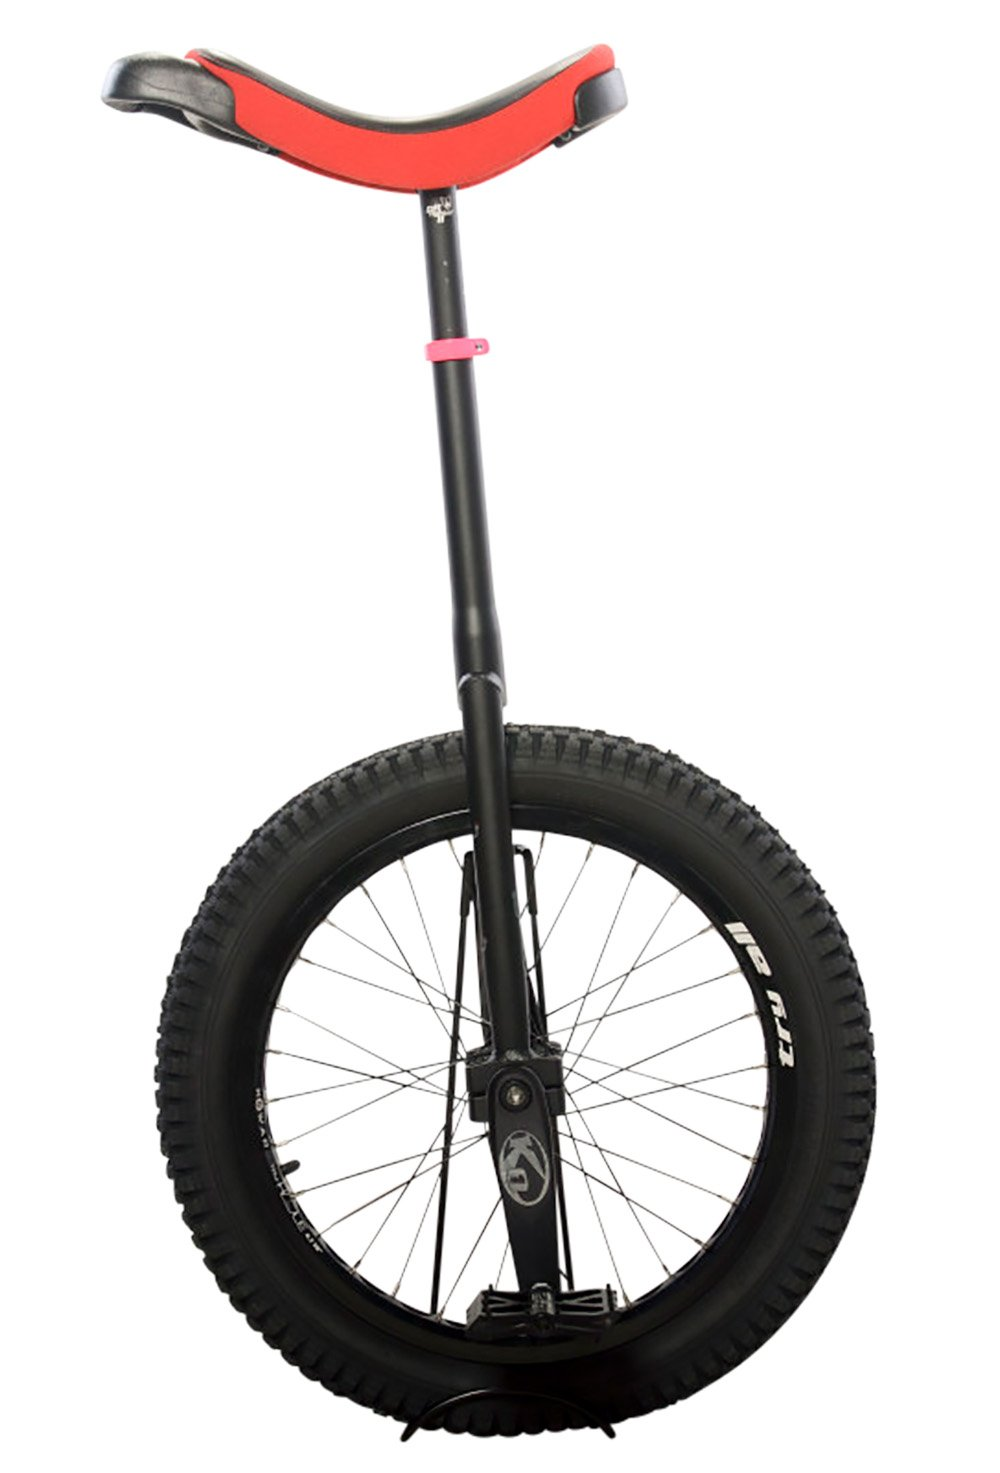 Koxx Troll 20 Trials Unicycle, Red/Black with Black Pedals and Rims by Koxx